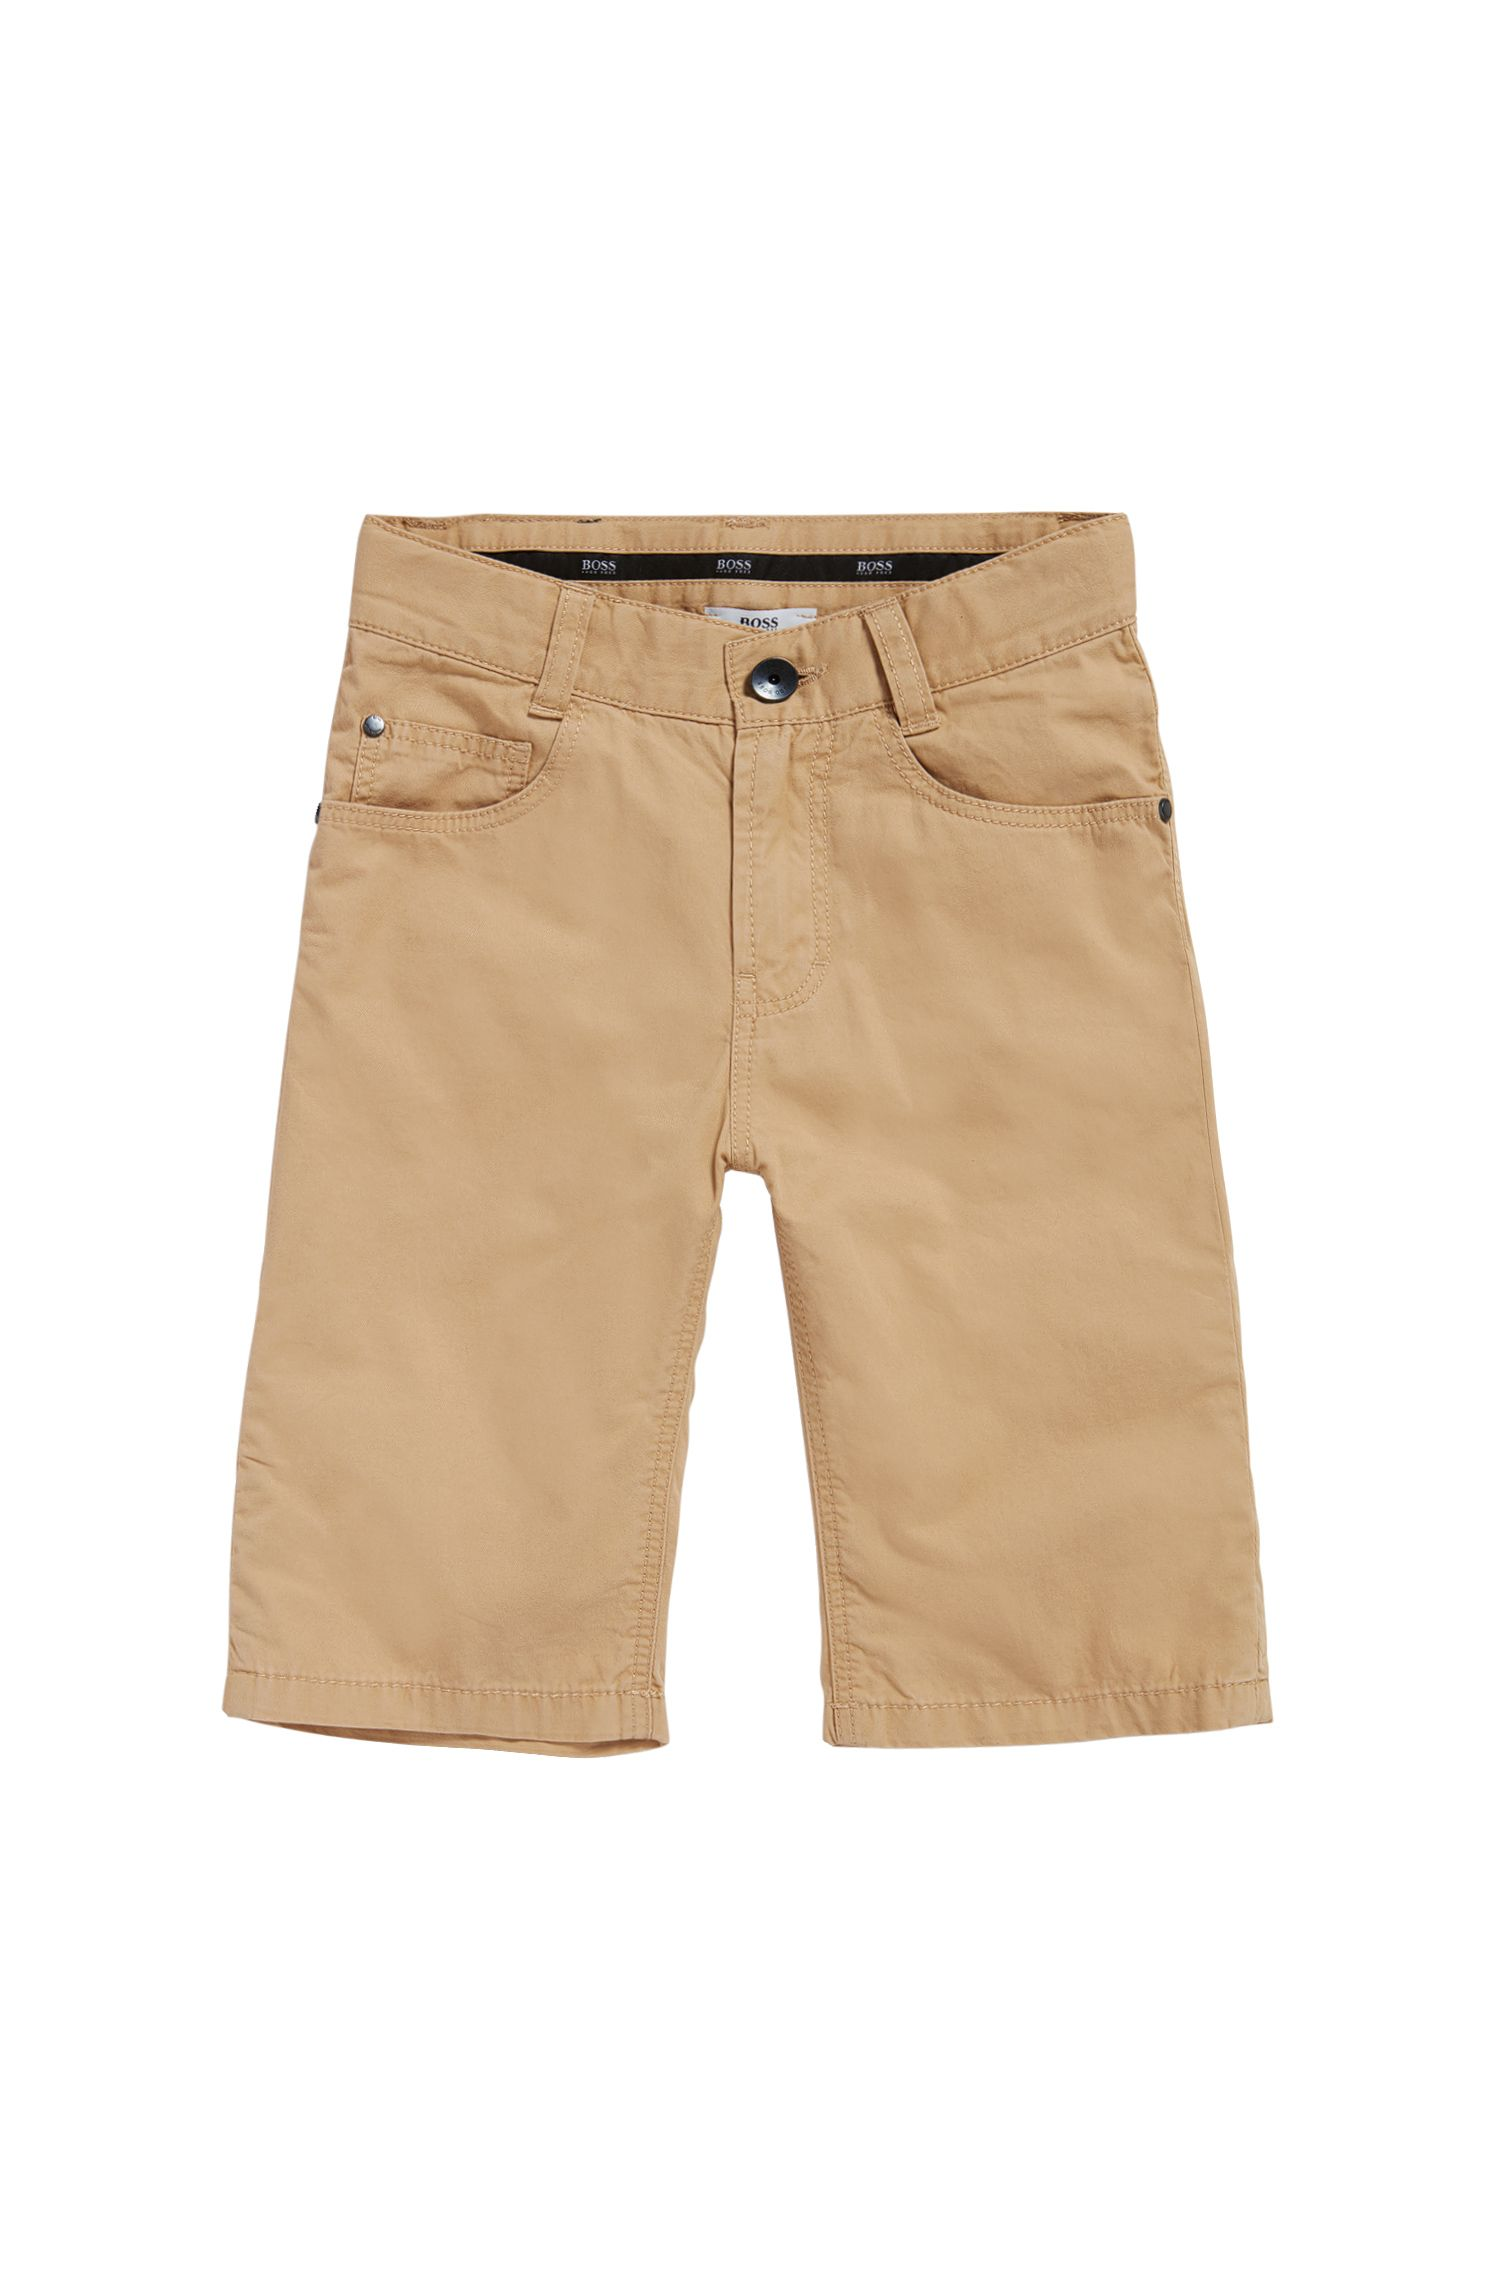 Kids-Shorts aus Baumwolle im Five-Pocket-Stil: 'J24433'